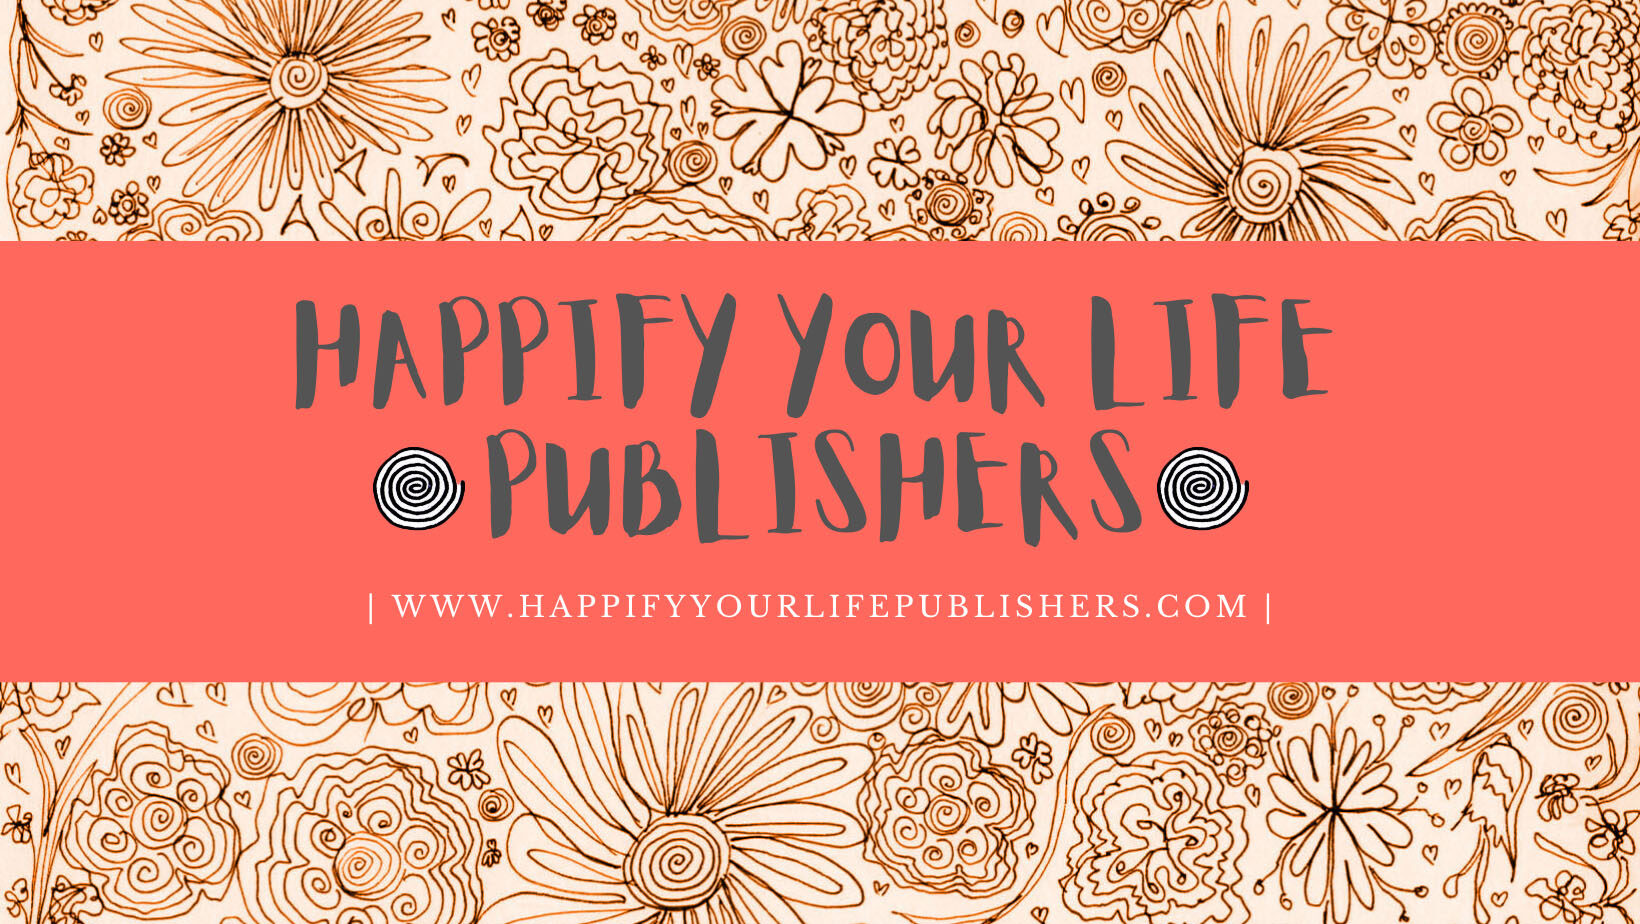 HAPPIFY YOUR LIFE PUBLISHERS